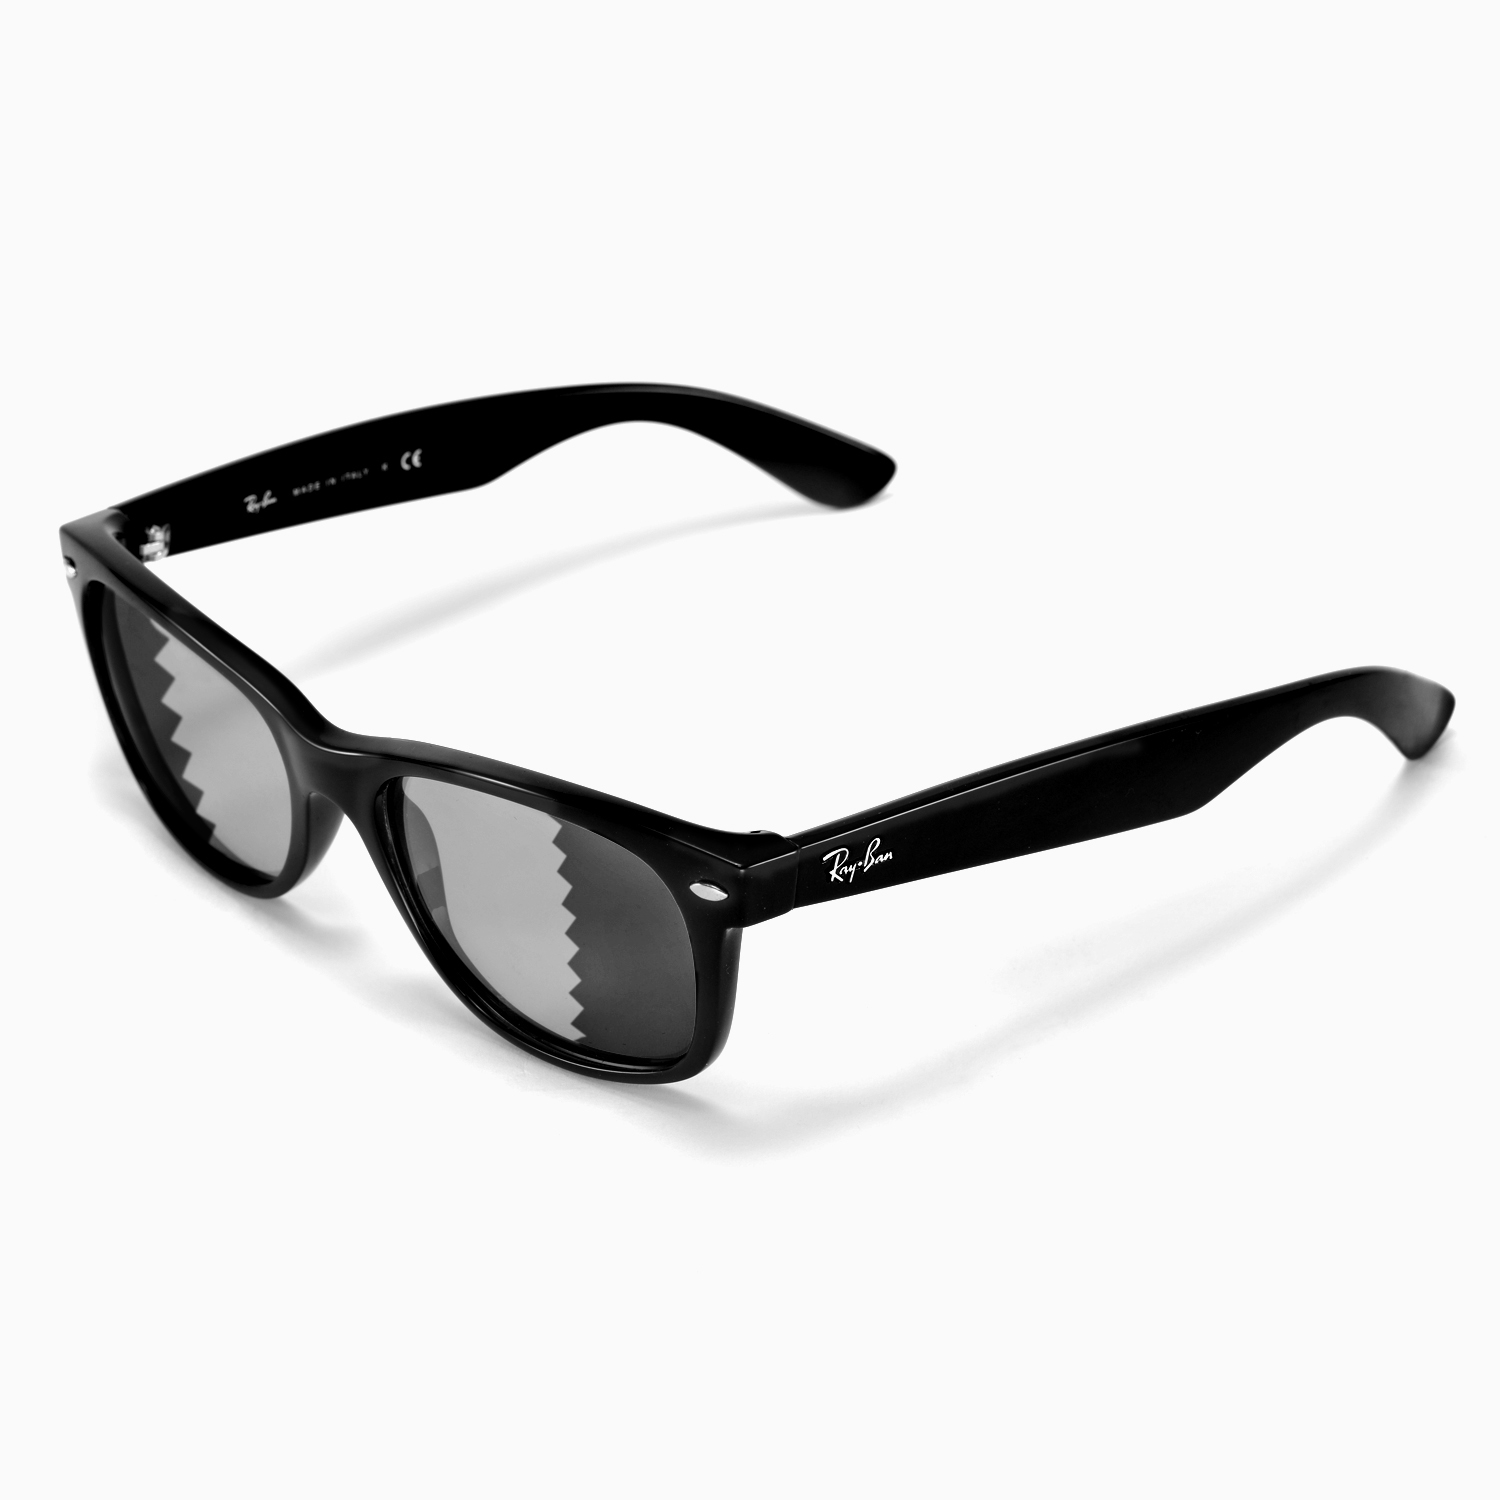 wayfarer blue  Walleva Polarized Transition /Photochro mic Lens 4 Ray-Ban ...